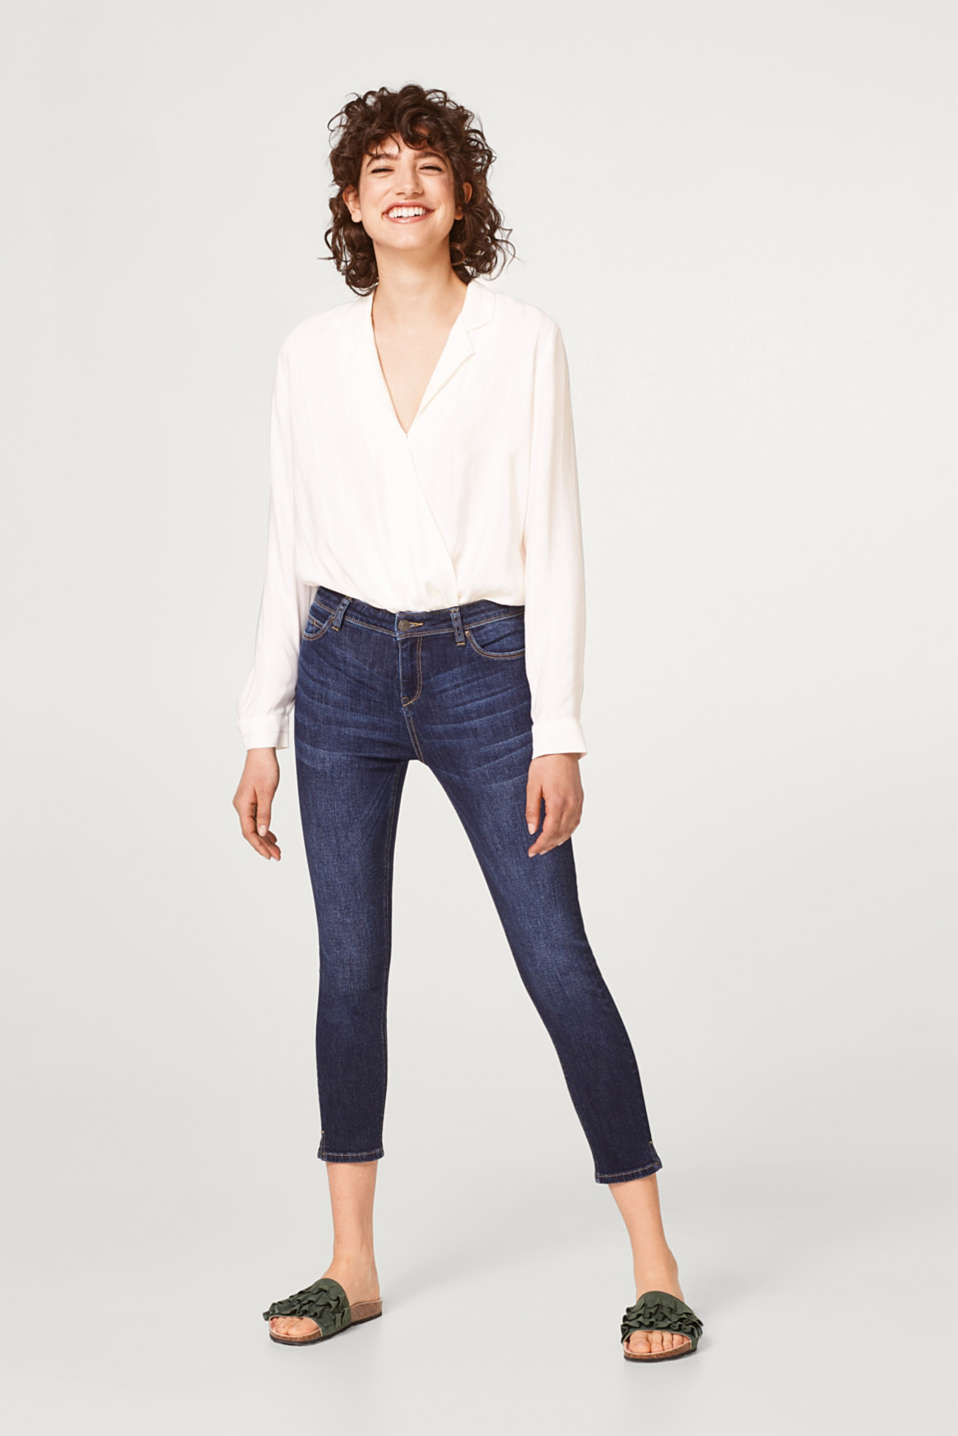 Stretchy, summery capri length jeans